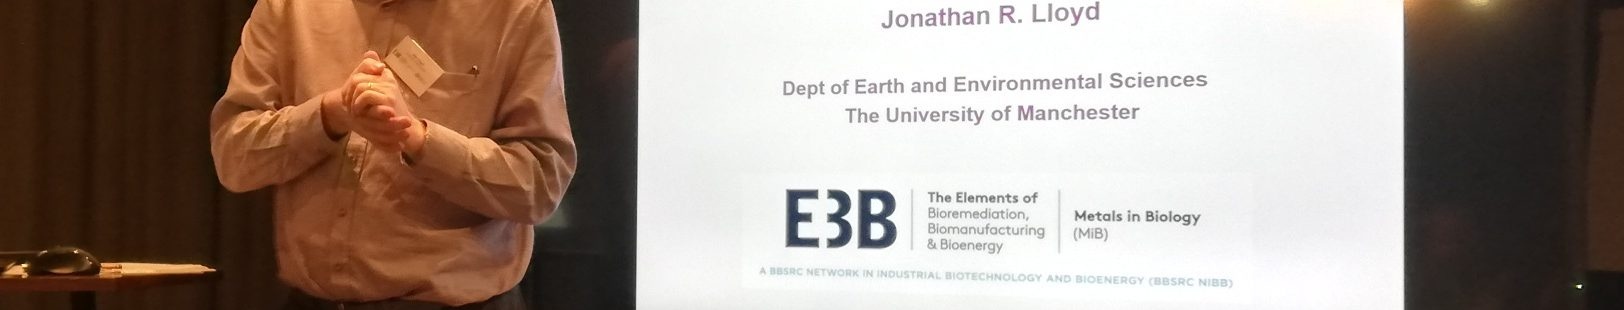 Joint M3B Net/EBNet Metal Biorecovery and Bioremediation: 28-29 Nov 19, Manchester